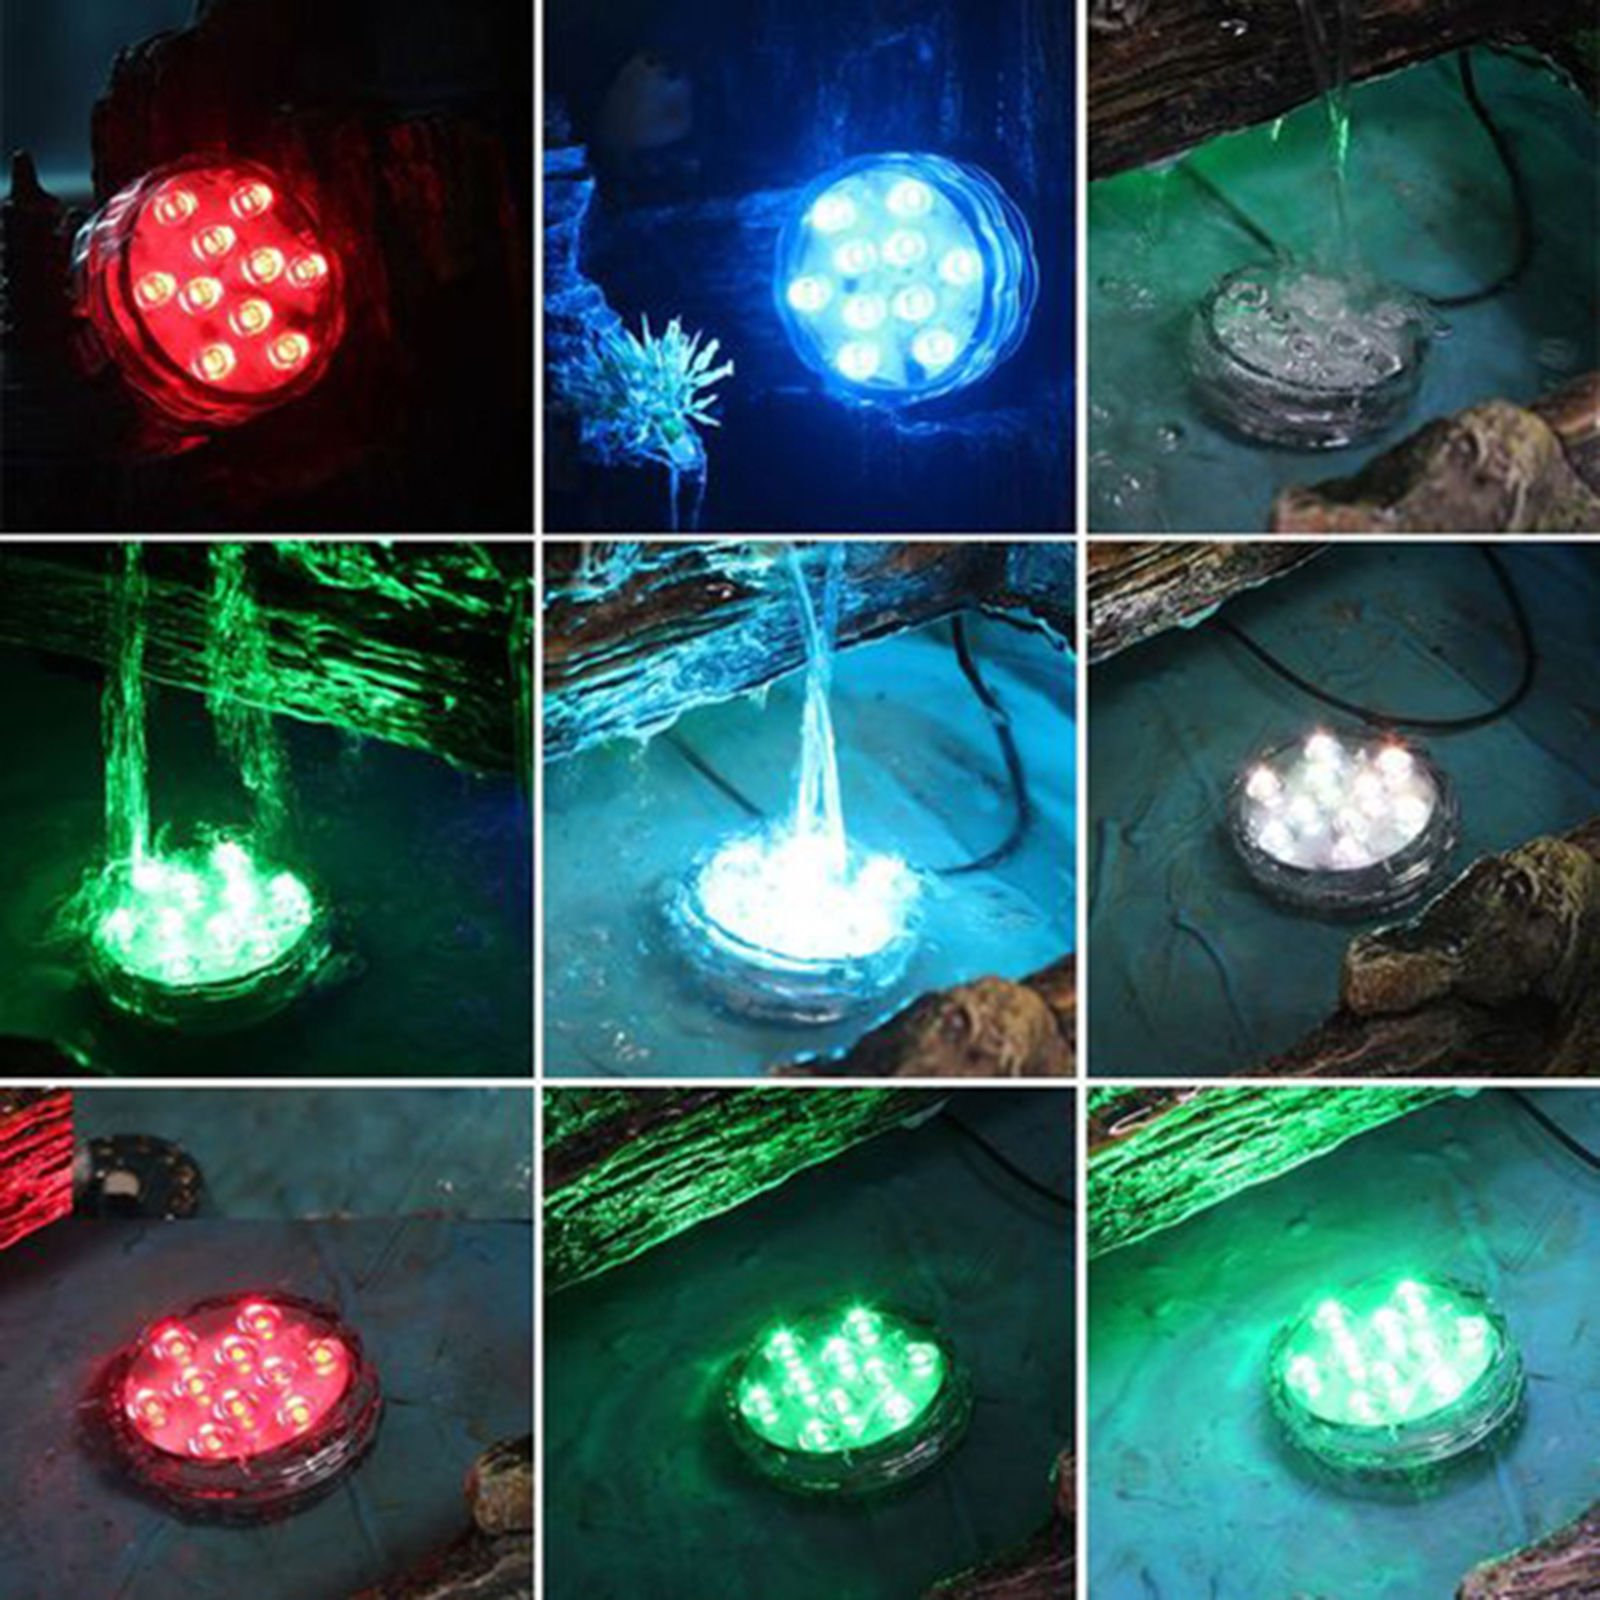 Alianelc Submersible LED Lights,Waterproof Underwater Remote Controlled Battery Operated Wireless Multicolor Submersible Led Lights for Holloween Pond,Christmas,Party,Wedding,Vase Base etc-Pack of 4.